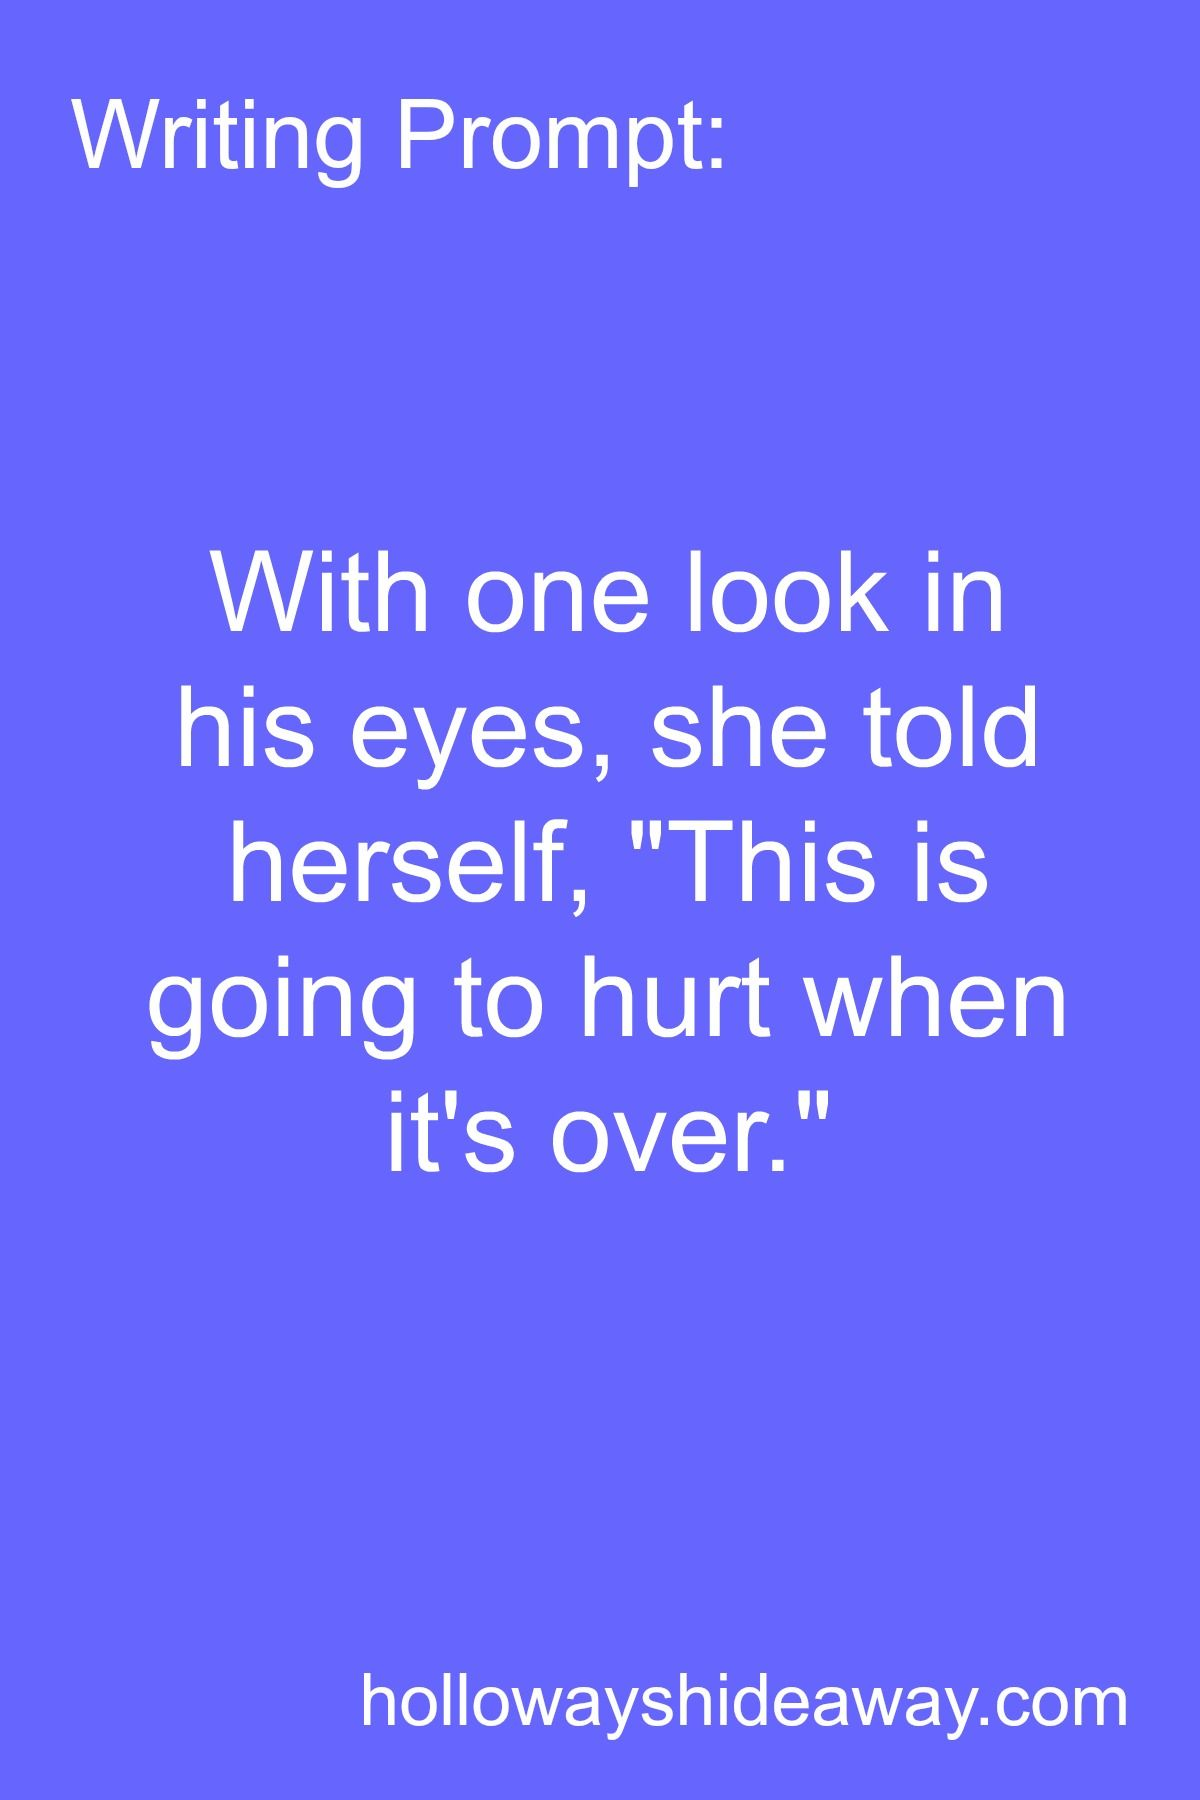 Writing Prompt With One Look In His Eyes She Told Herself